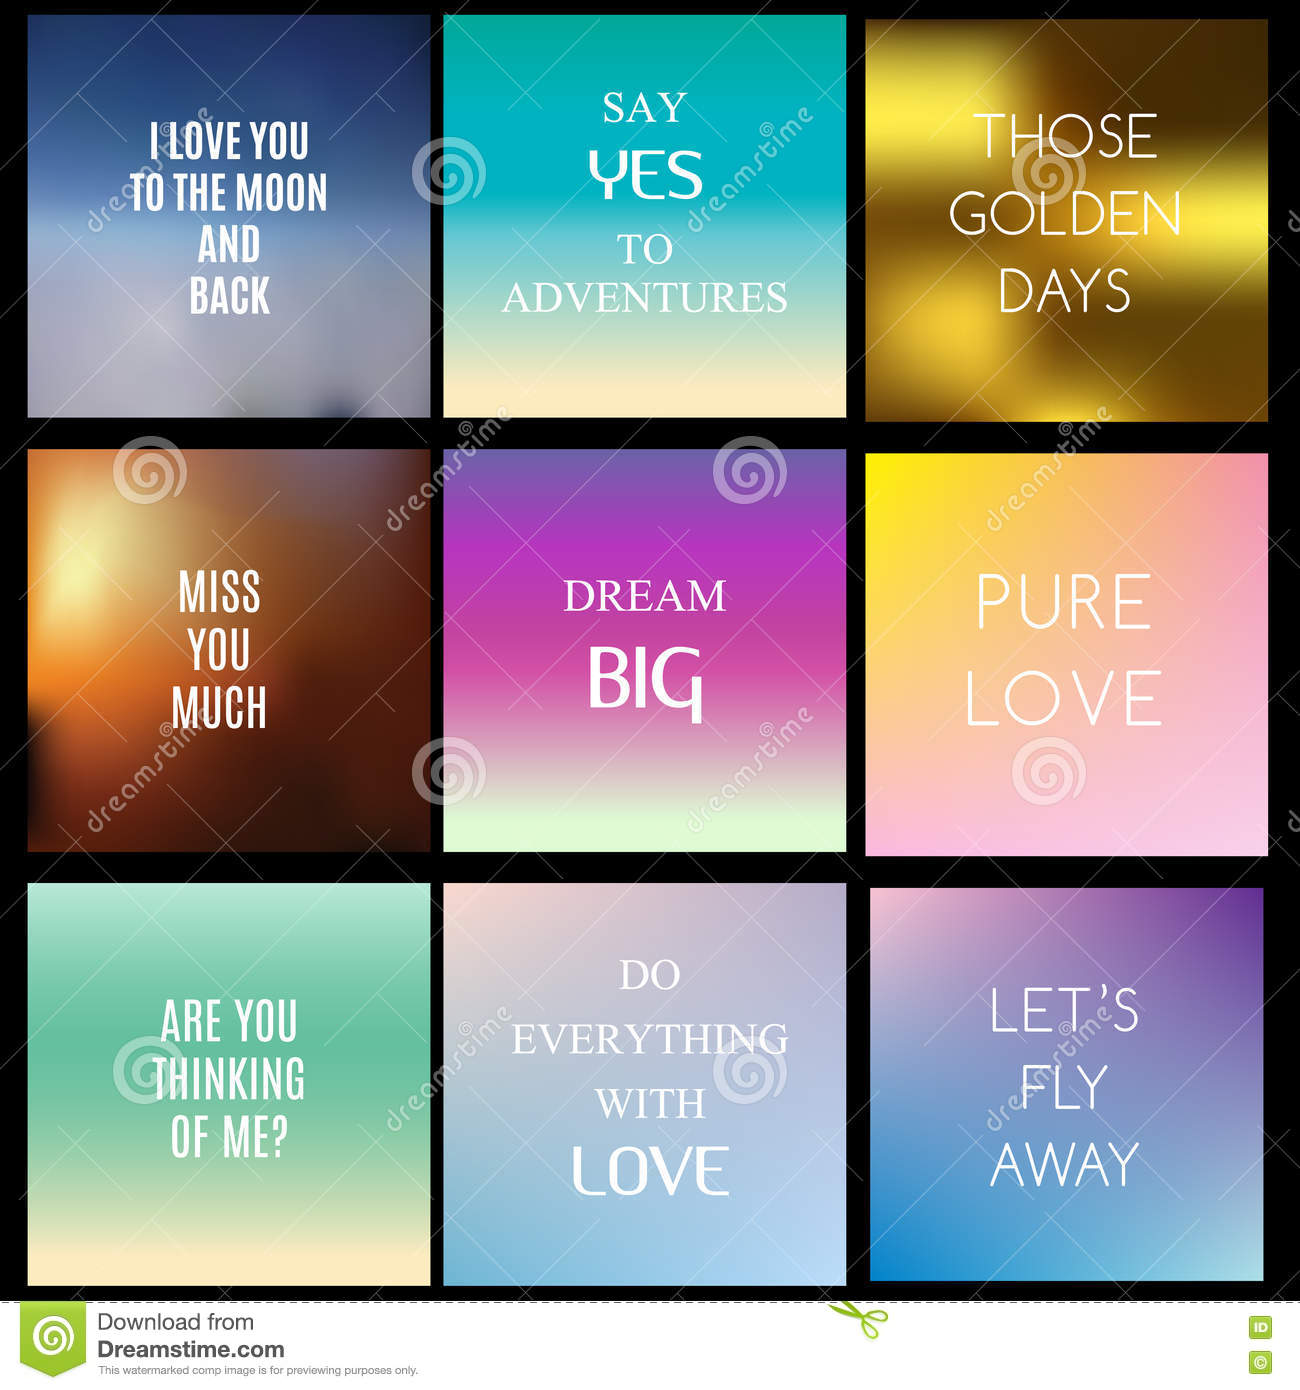 Blurred, Gradient Backgrounds With Inspiring Quotes And